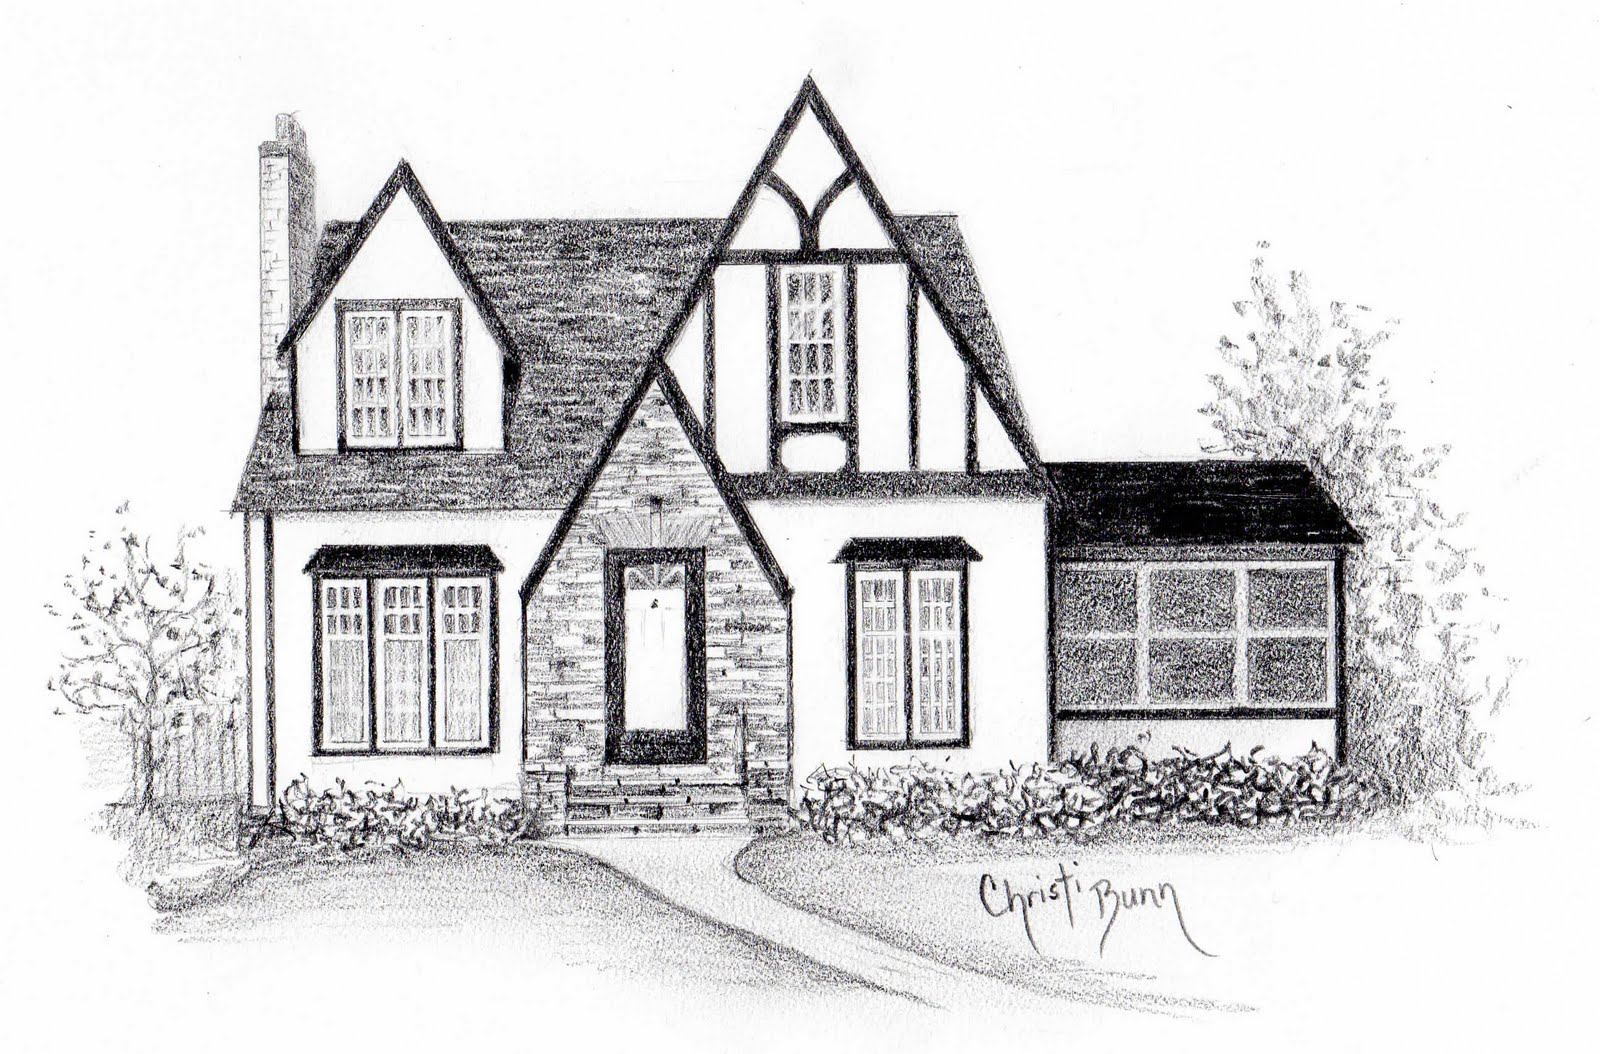 The Tudor Cottage Was Great And Second One Is A London Townhome Such Fun To Draw I Am Looking Forward New Commission In Next Few Months Of